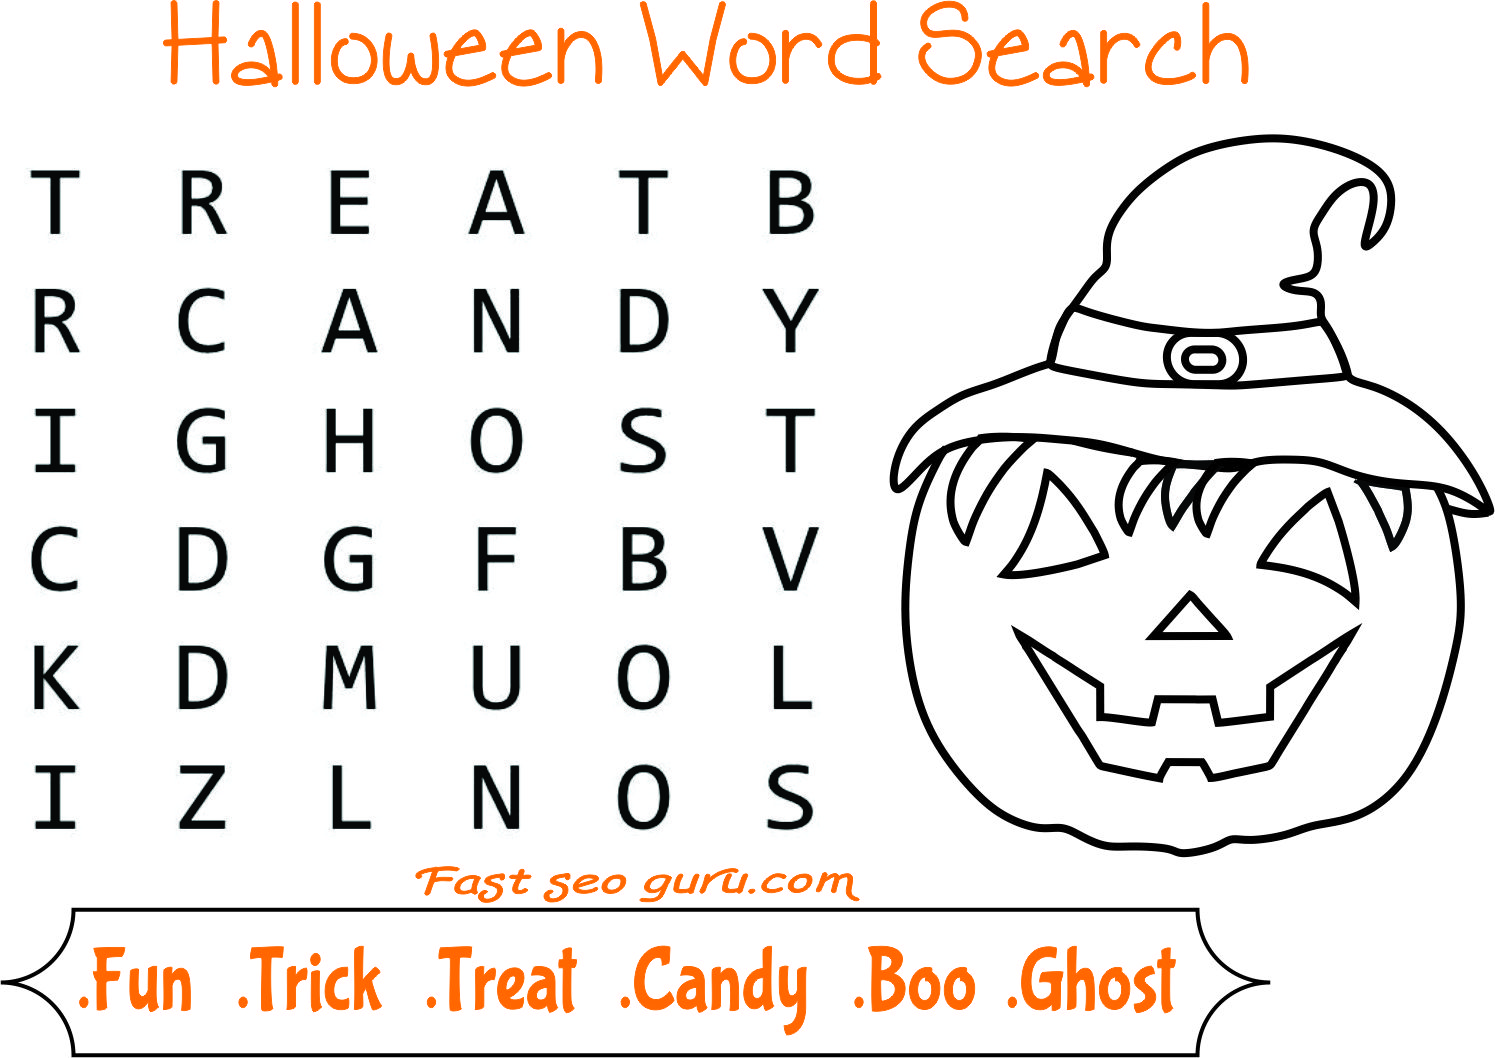 Easy halloween word search for kids Halloween word